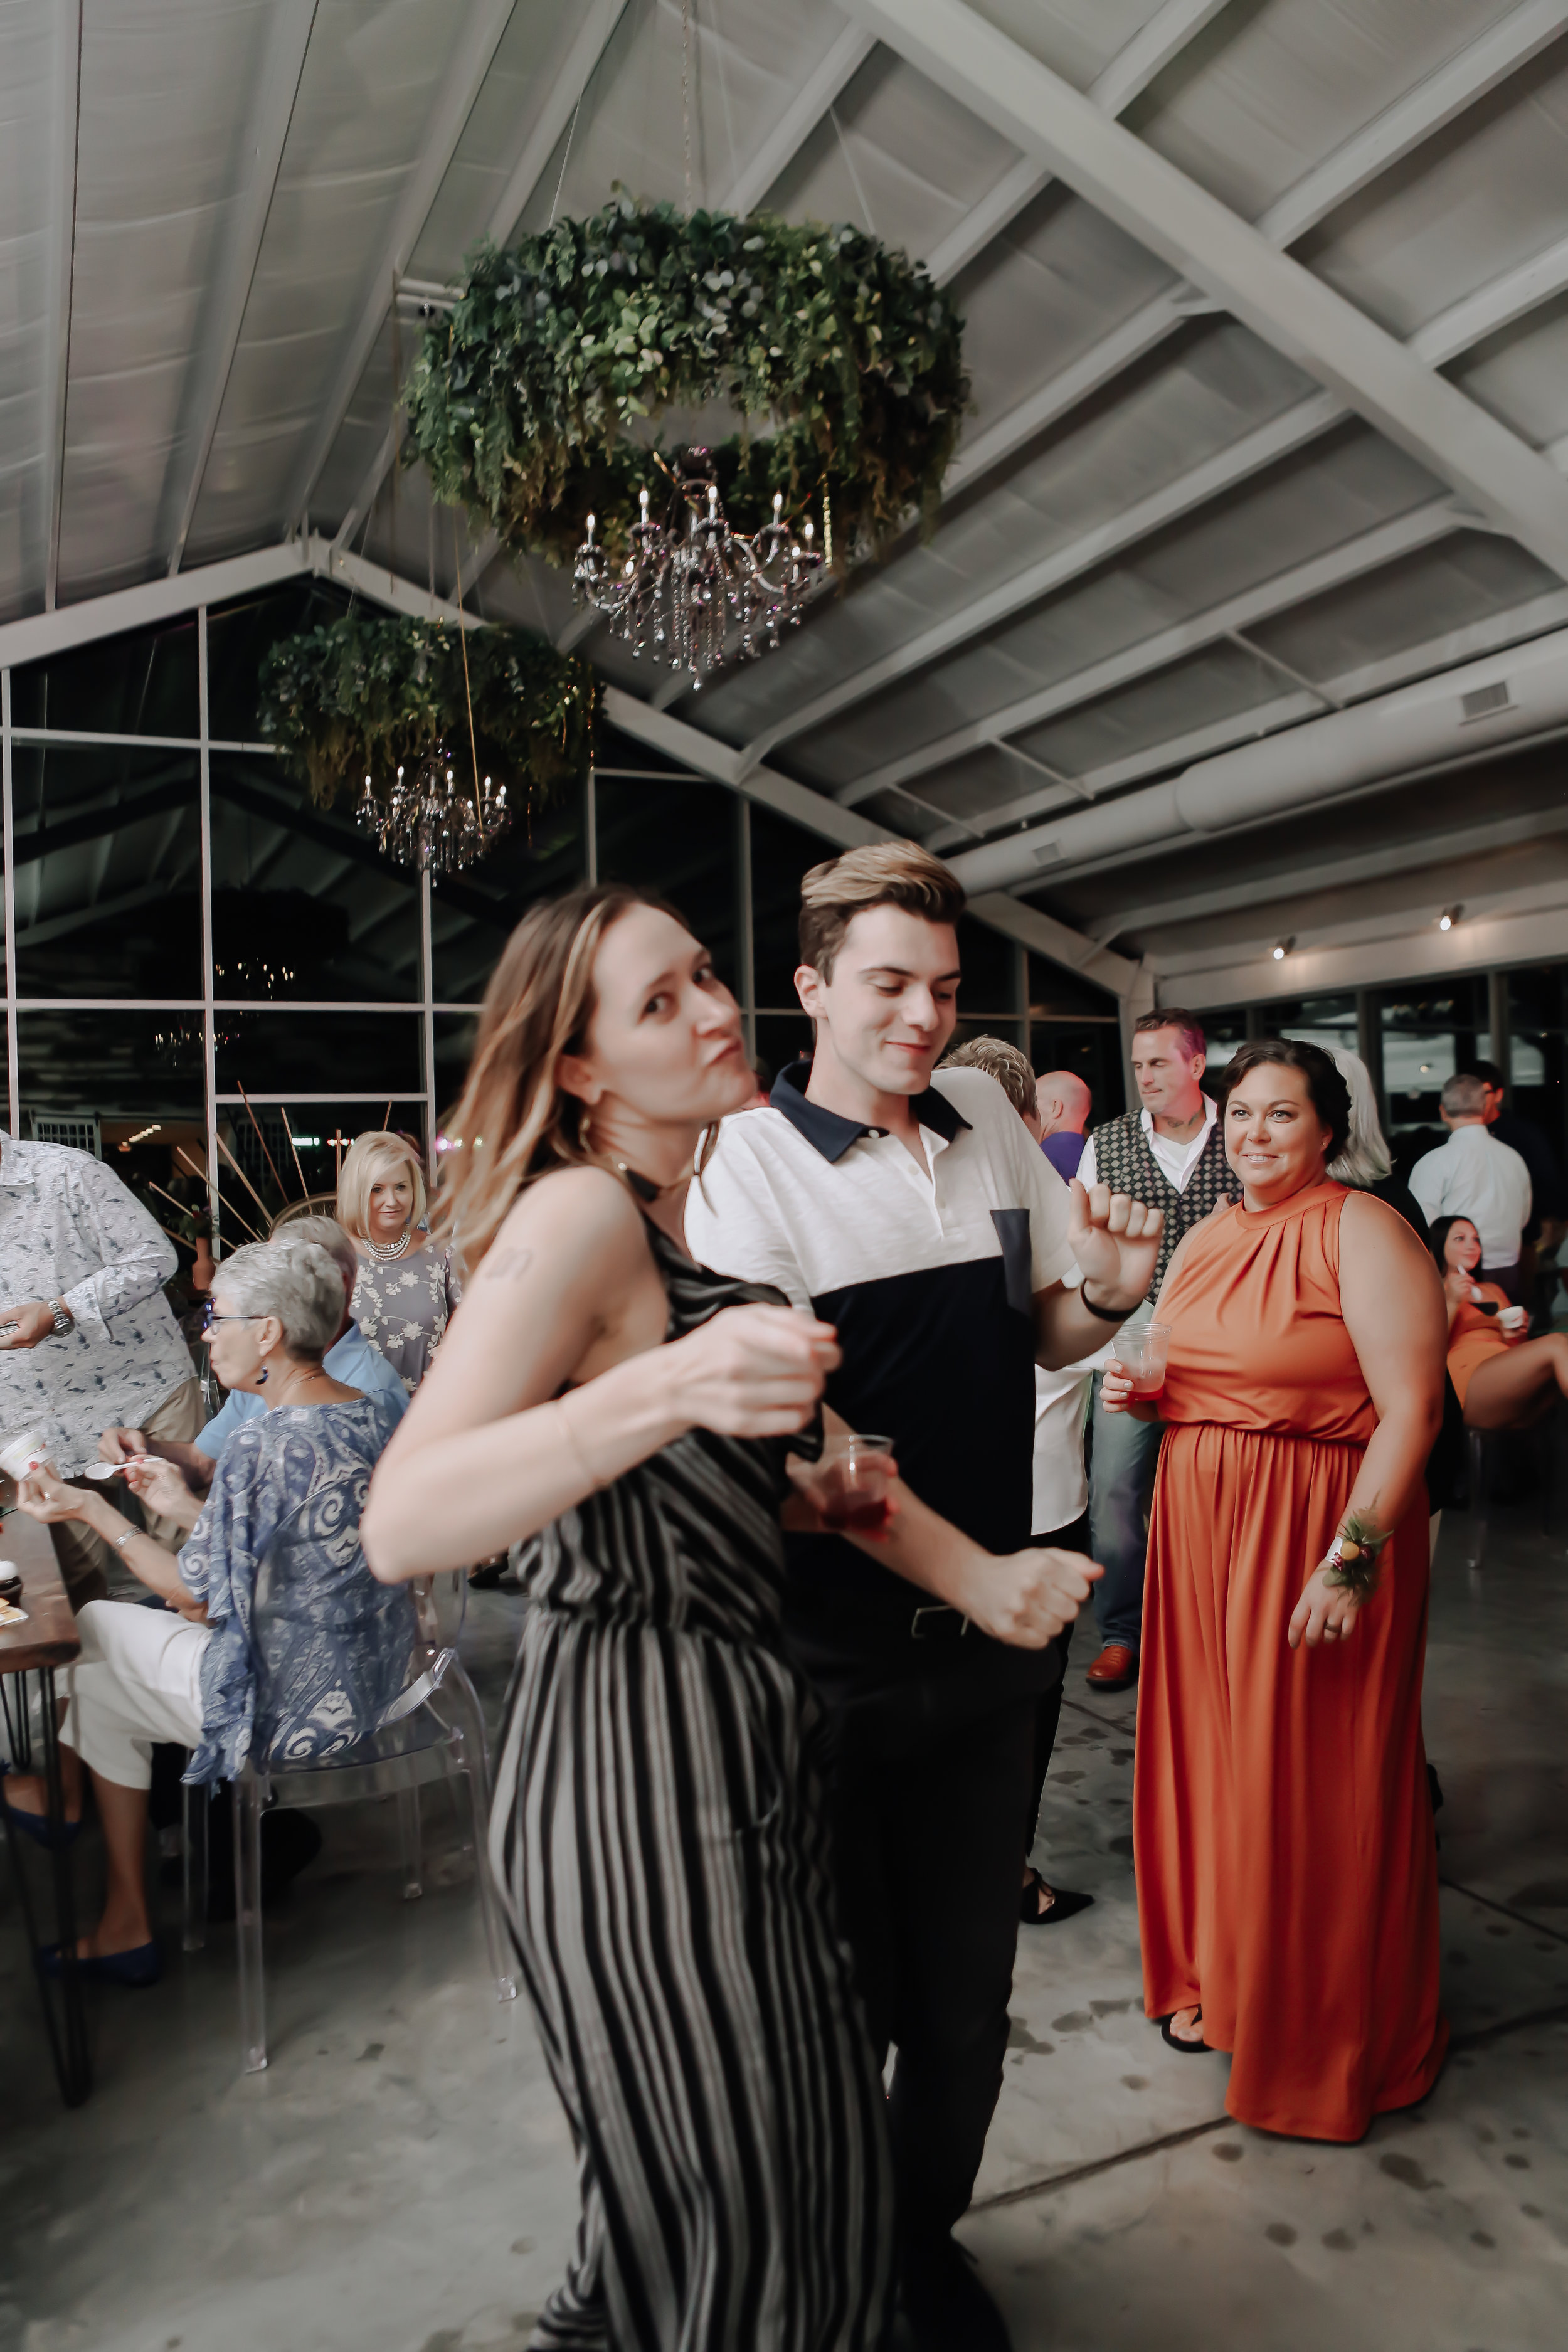 The best weddings are the ones where the couple fully shows up as themselves. That's when people celebrate the most. | Lauren Greenberg Photography